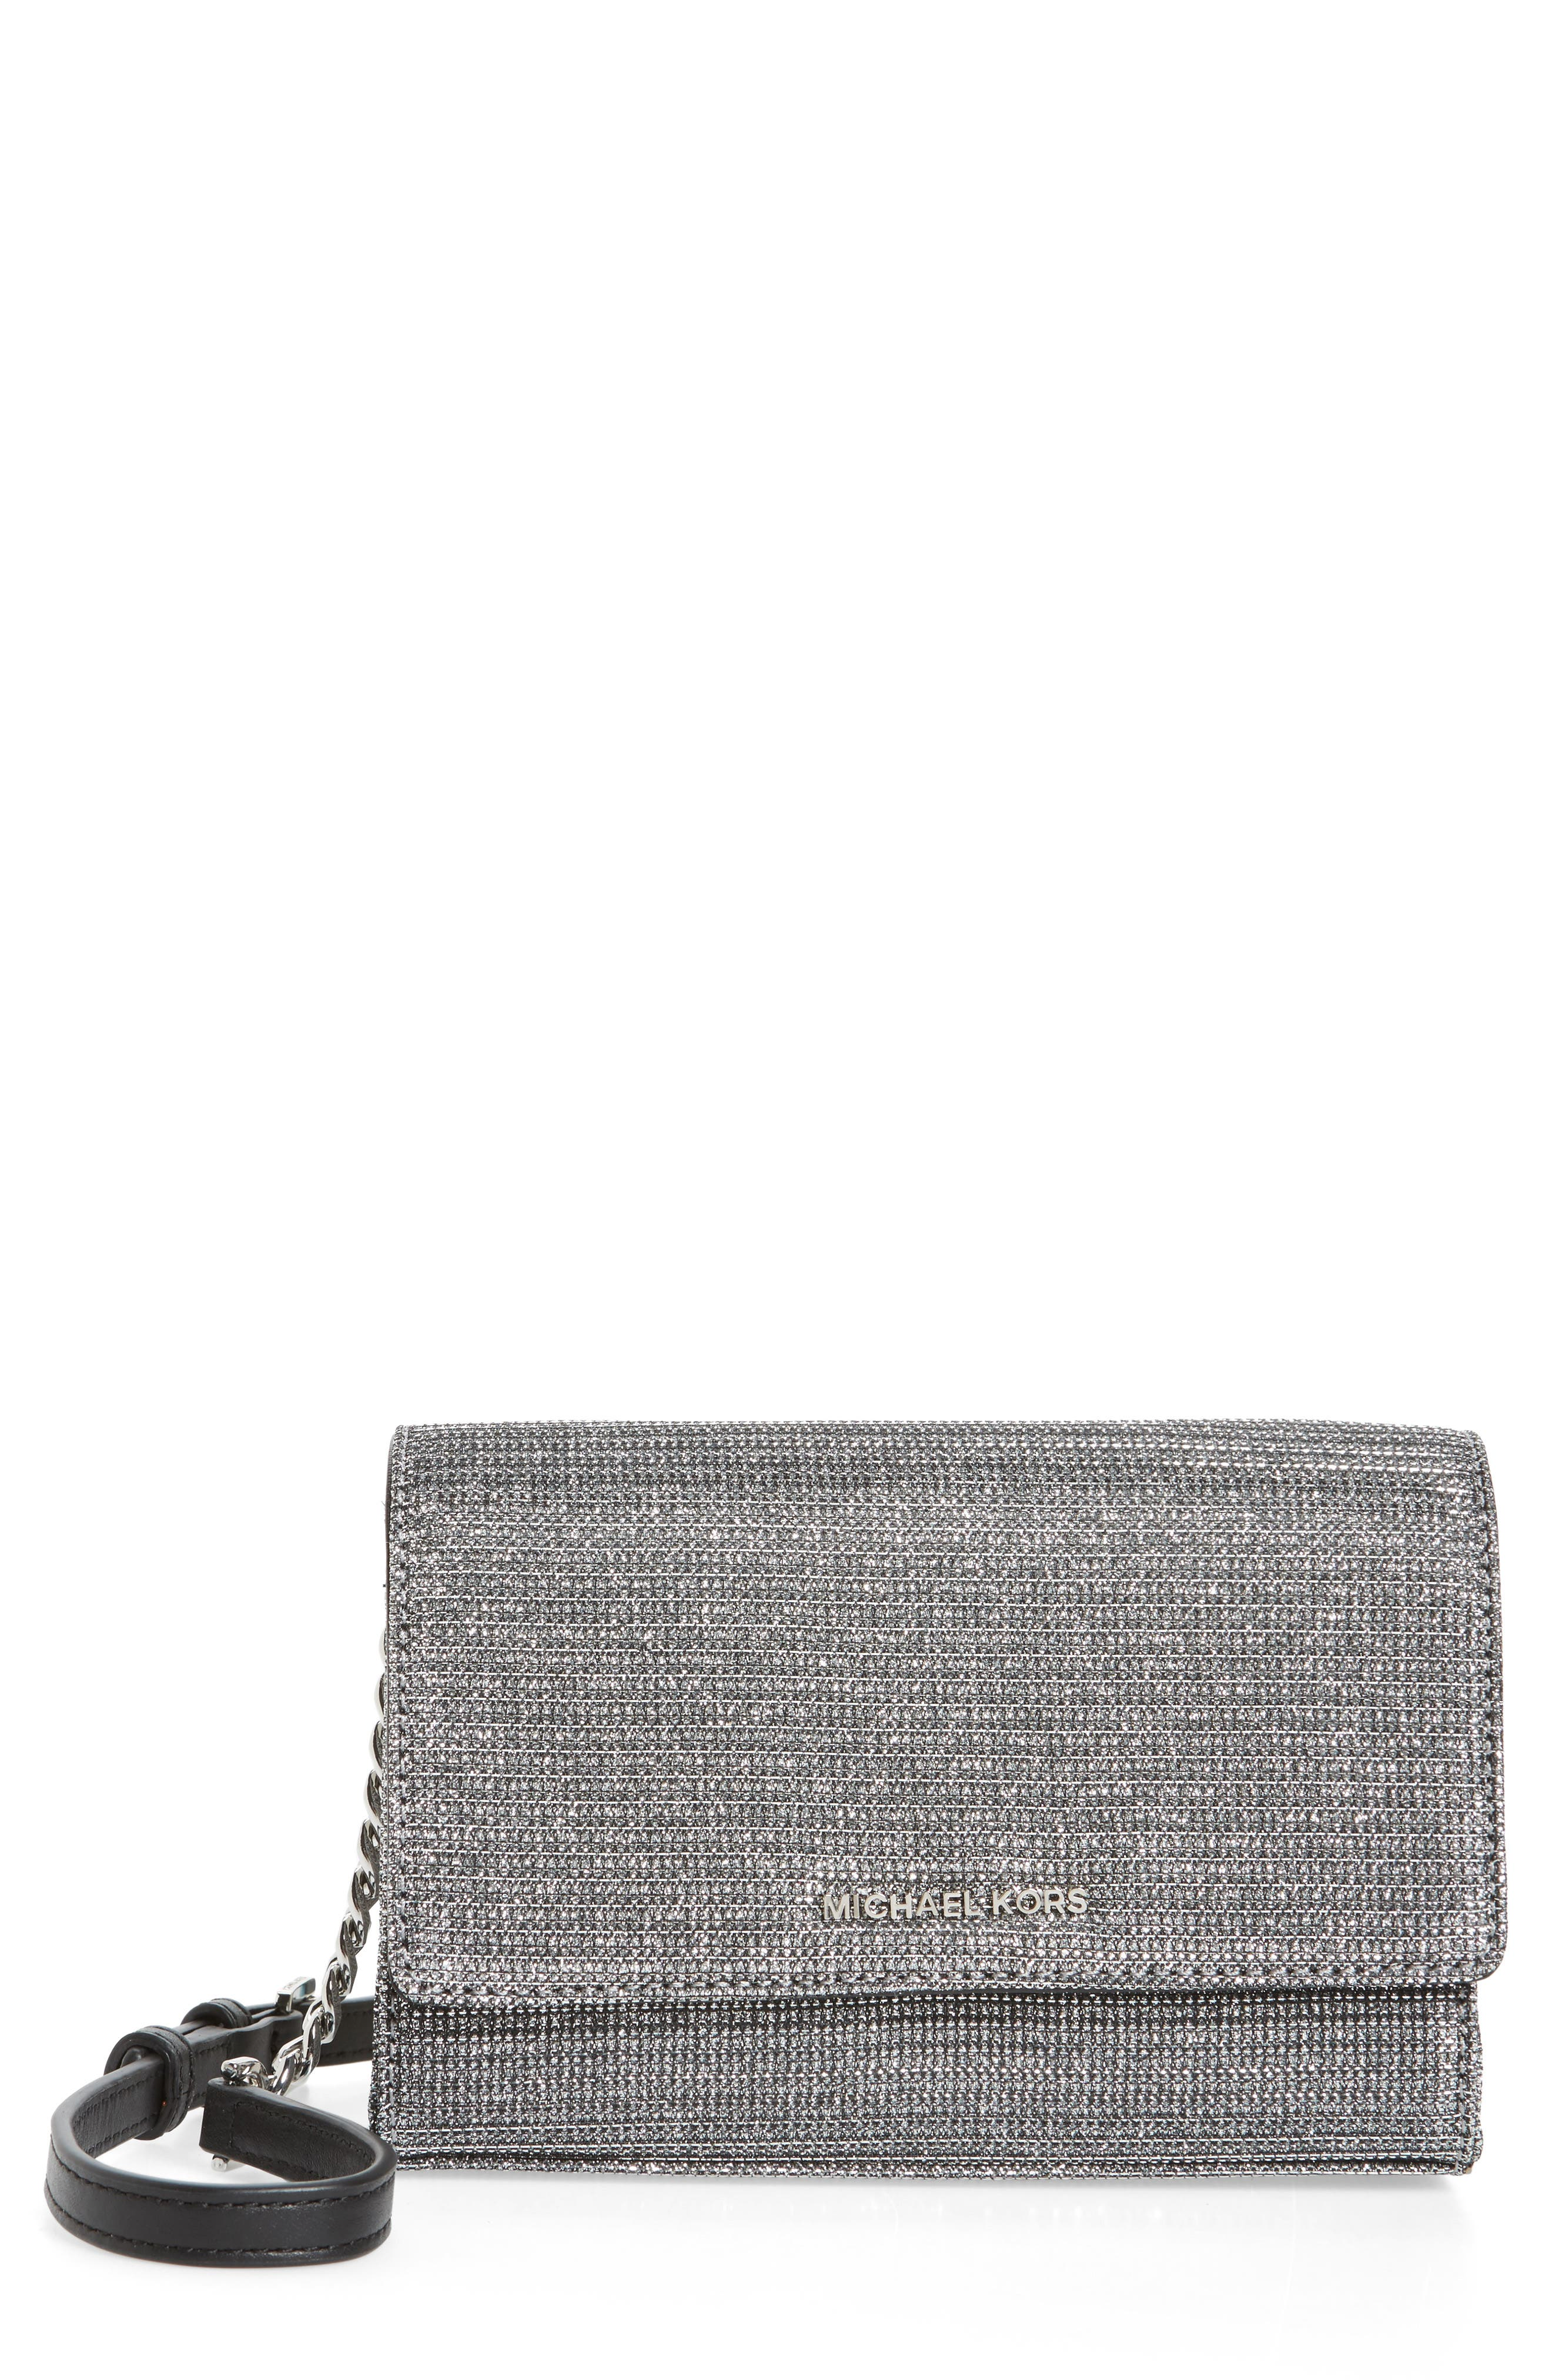 Medium Ruby Convertible Leather Clutch,                         Main,                         color, 043